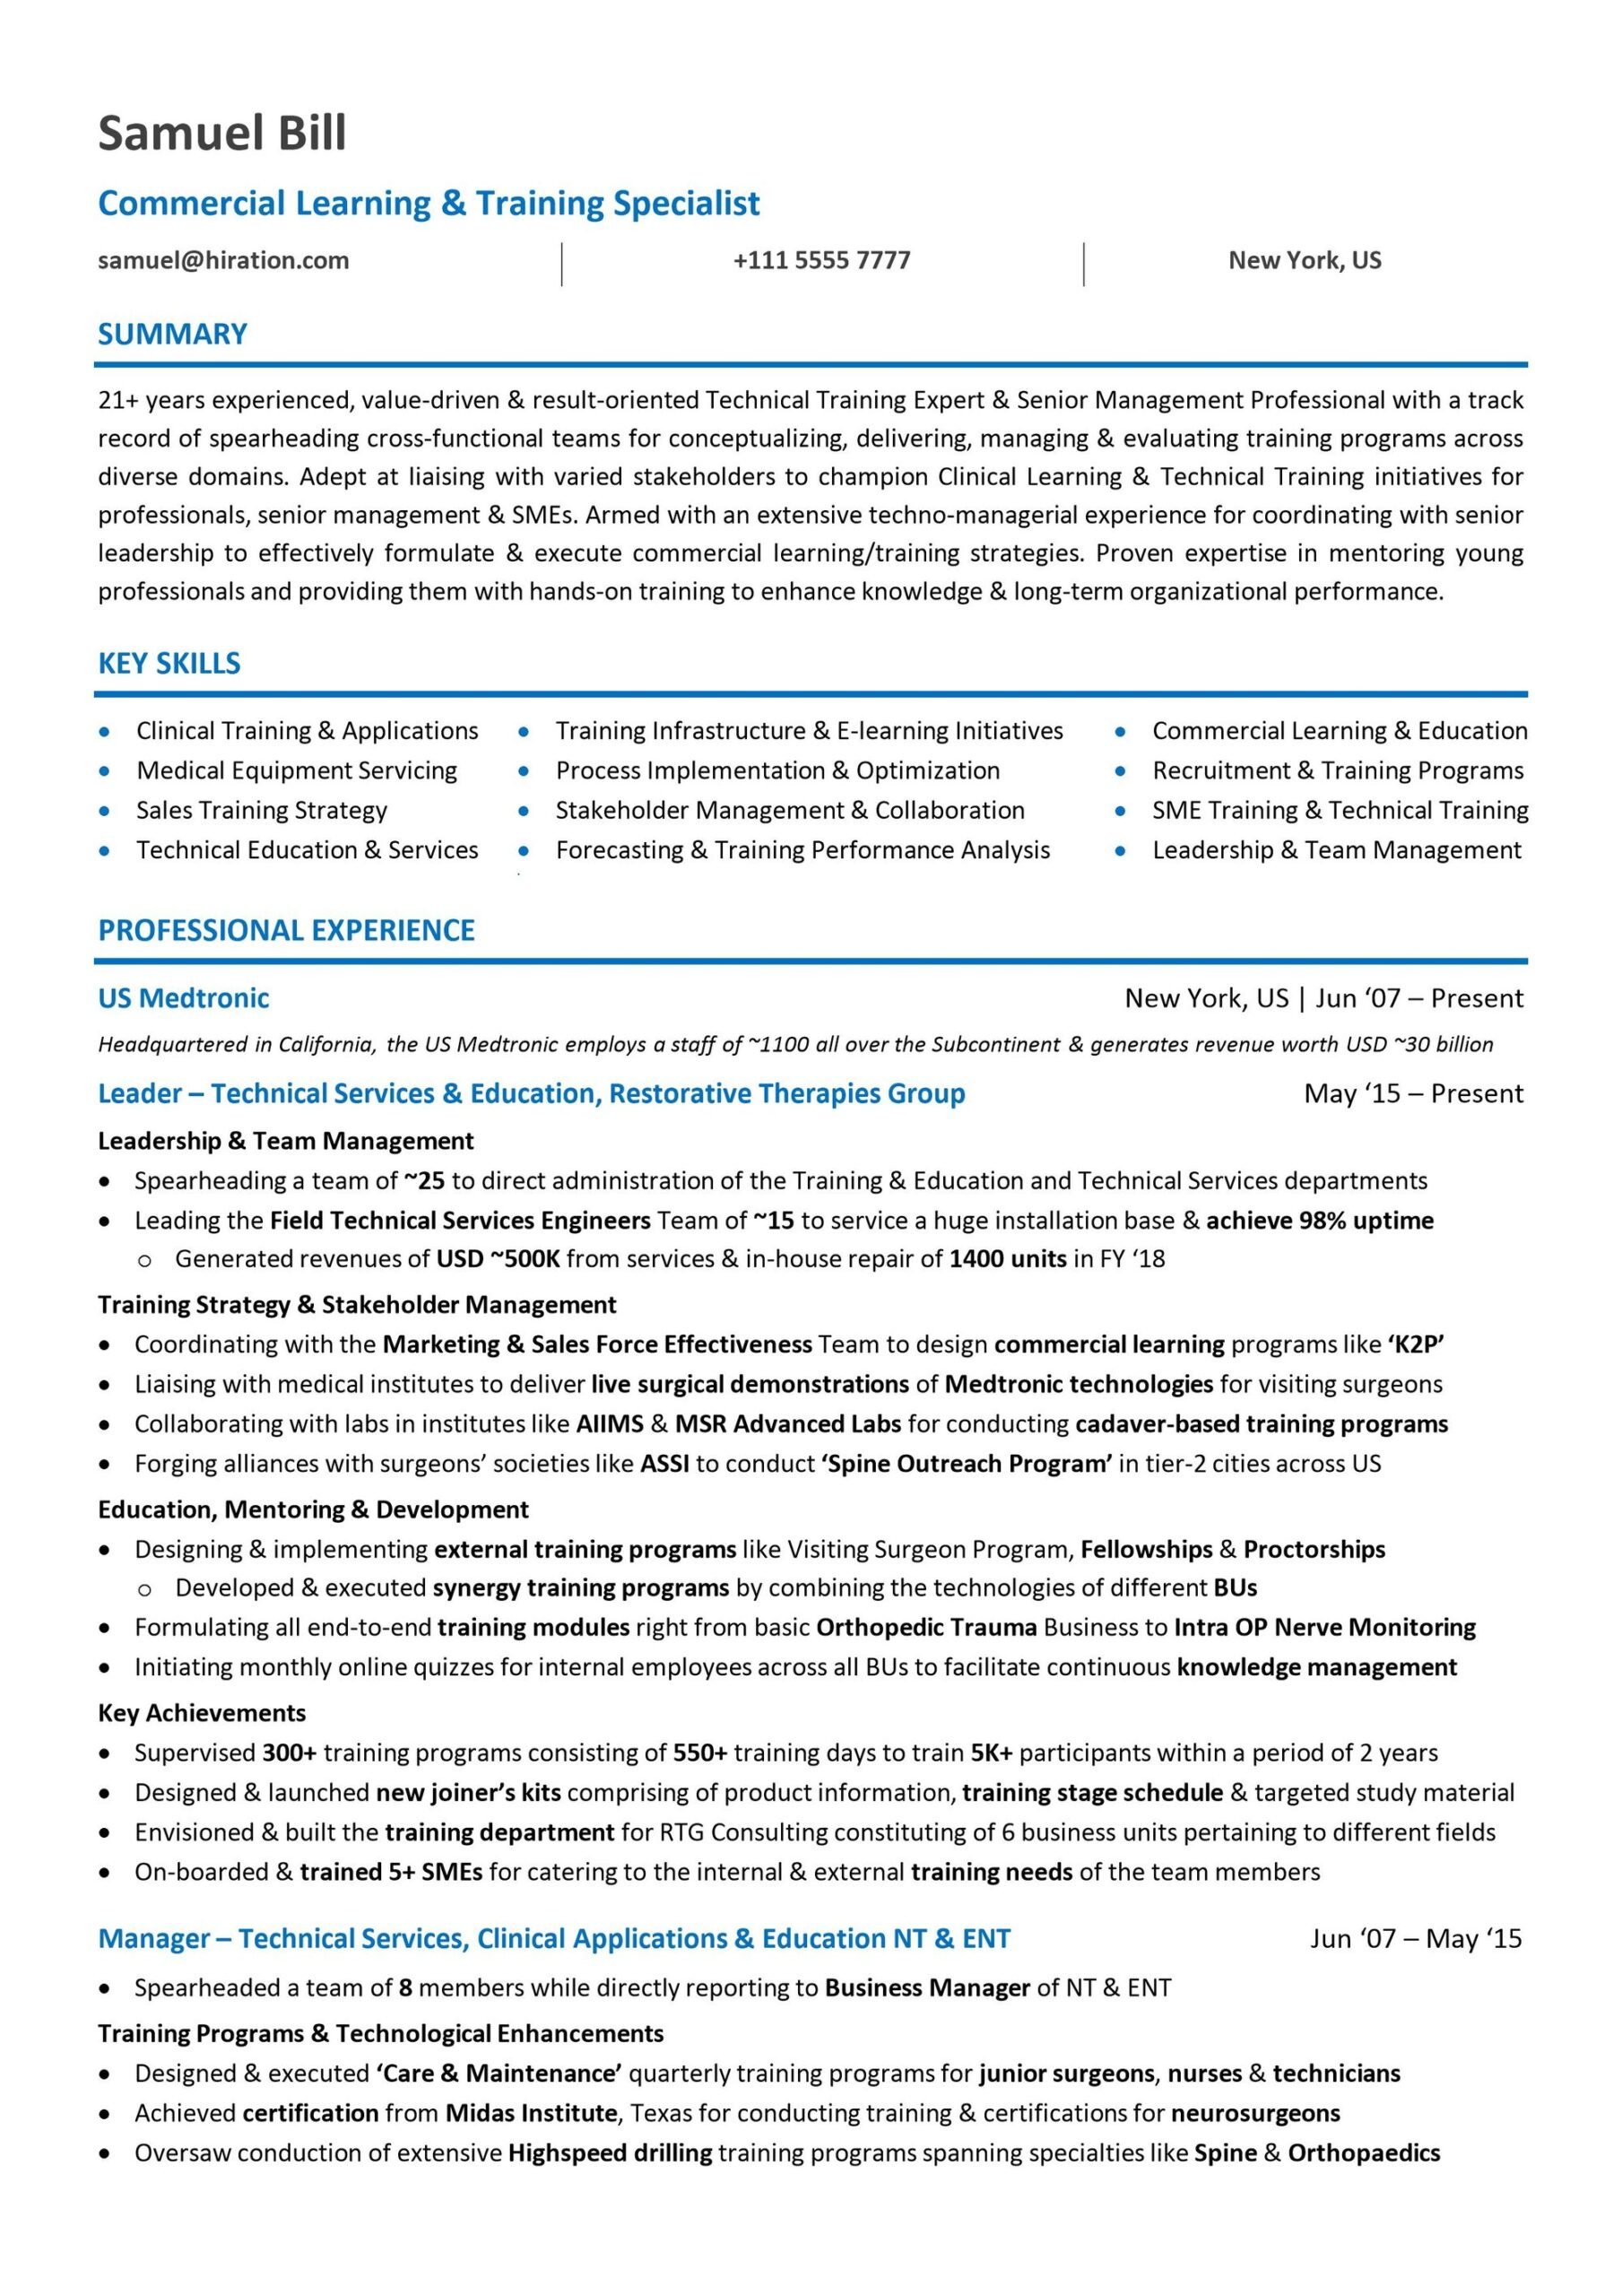 career change resume guide to for professional summary accounting writers auditor sample Resume Professional Summary For Resume Career Change